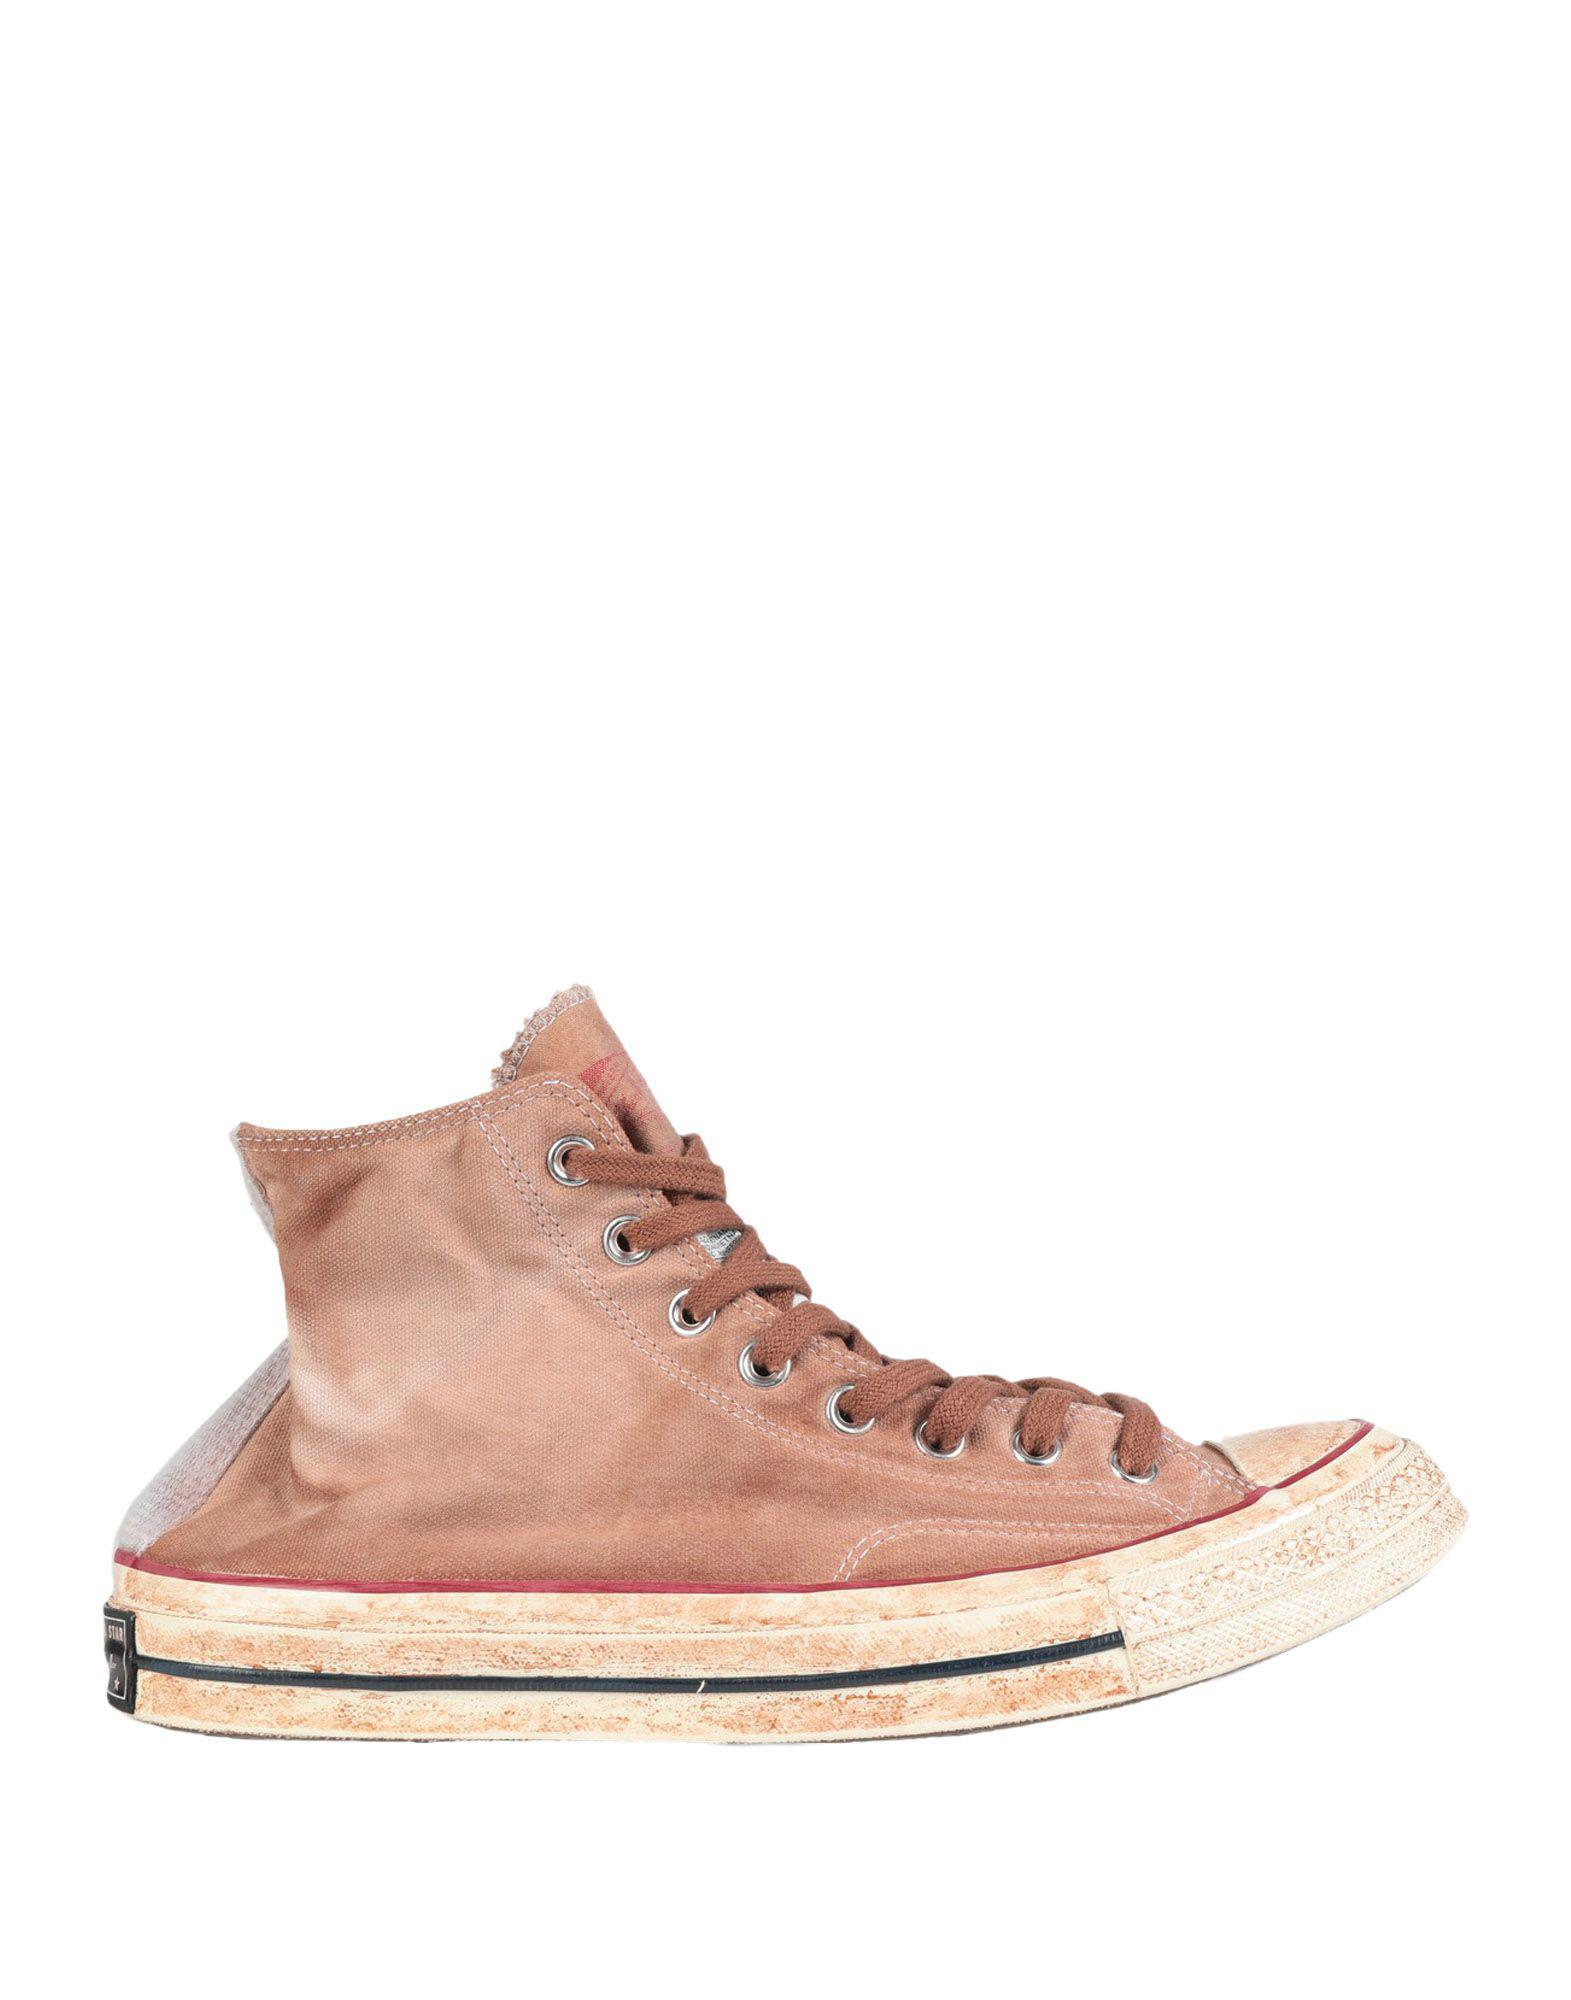 e50cc47723212d Converse High-tops   Sneakers in Brown for Men - Lyst